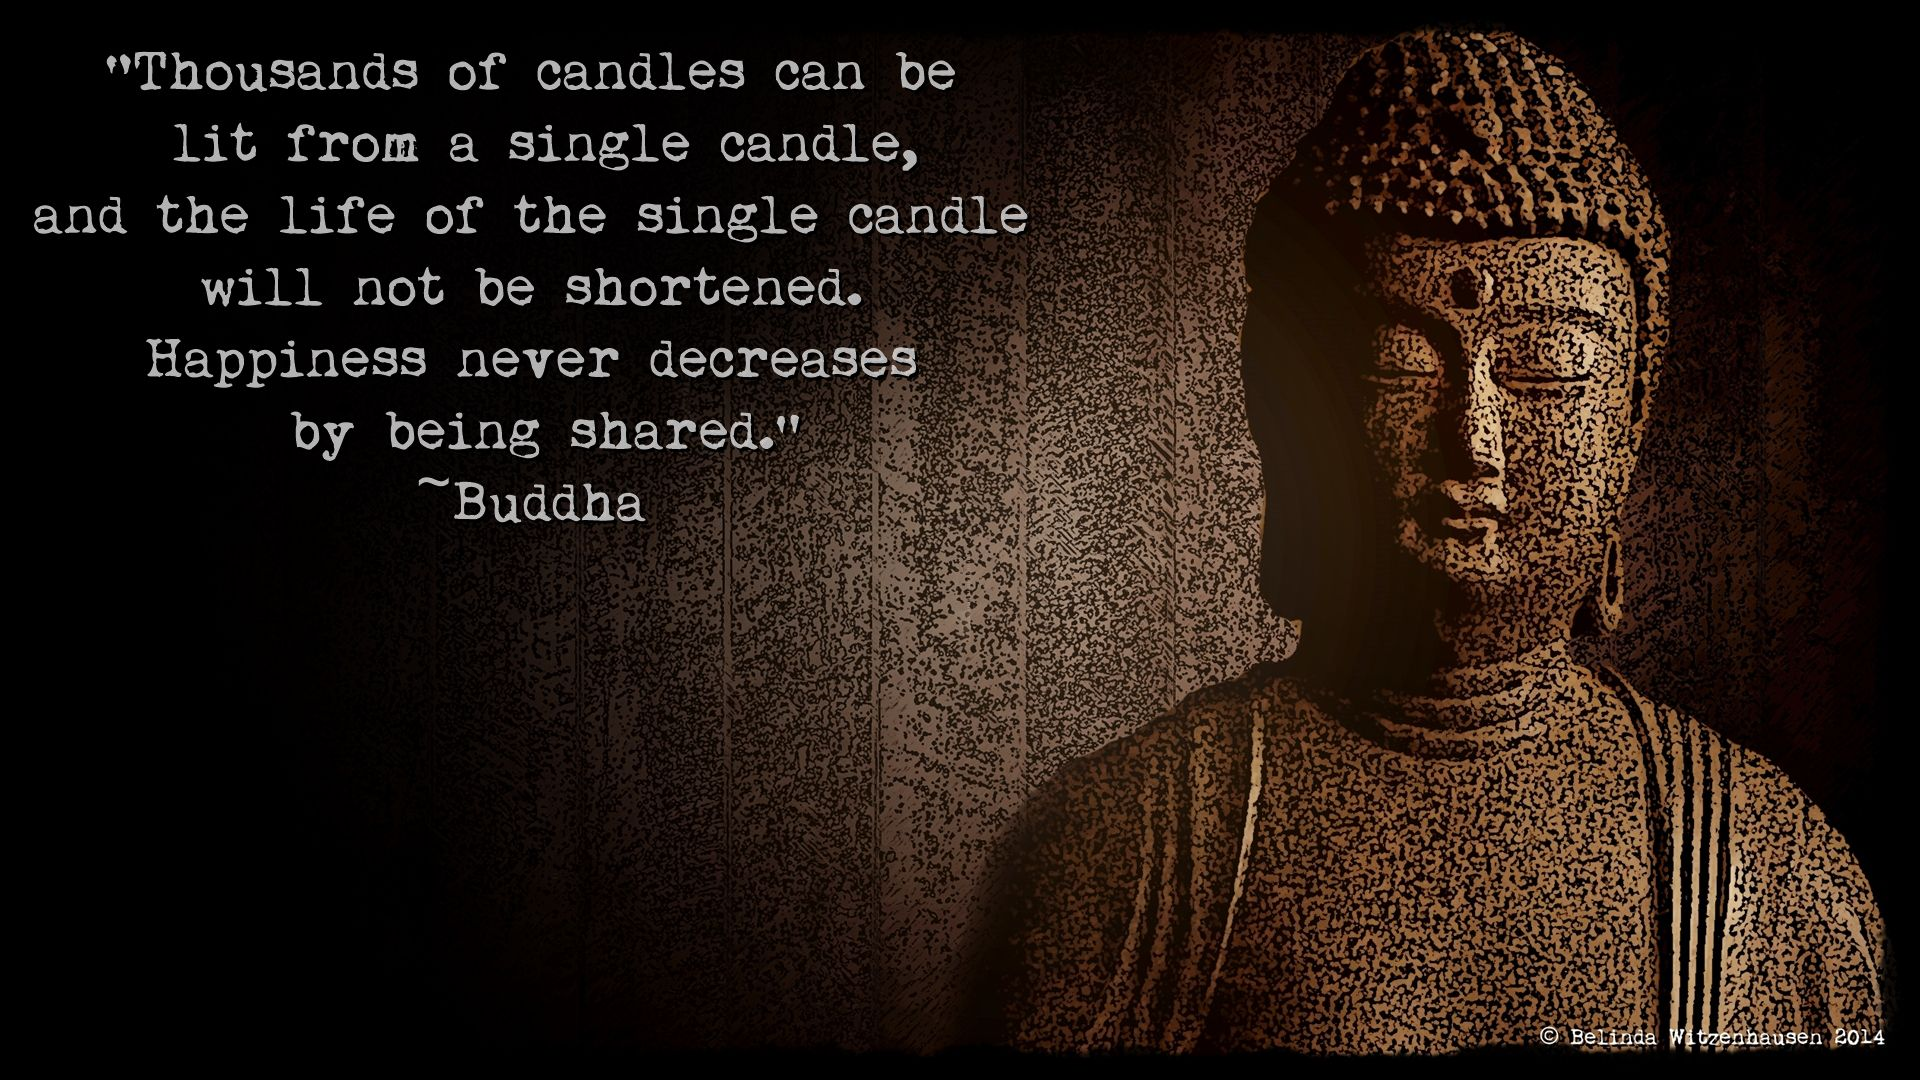 Phone Wallpaper Quotes To Inspire Your New Year Buddha Quotes Inspirational Phone Wallpaper Quotes Best Buddha Quotes